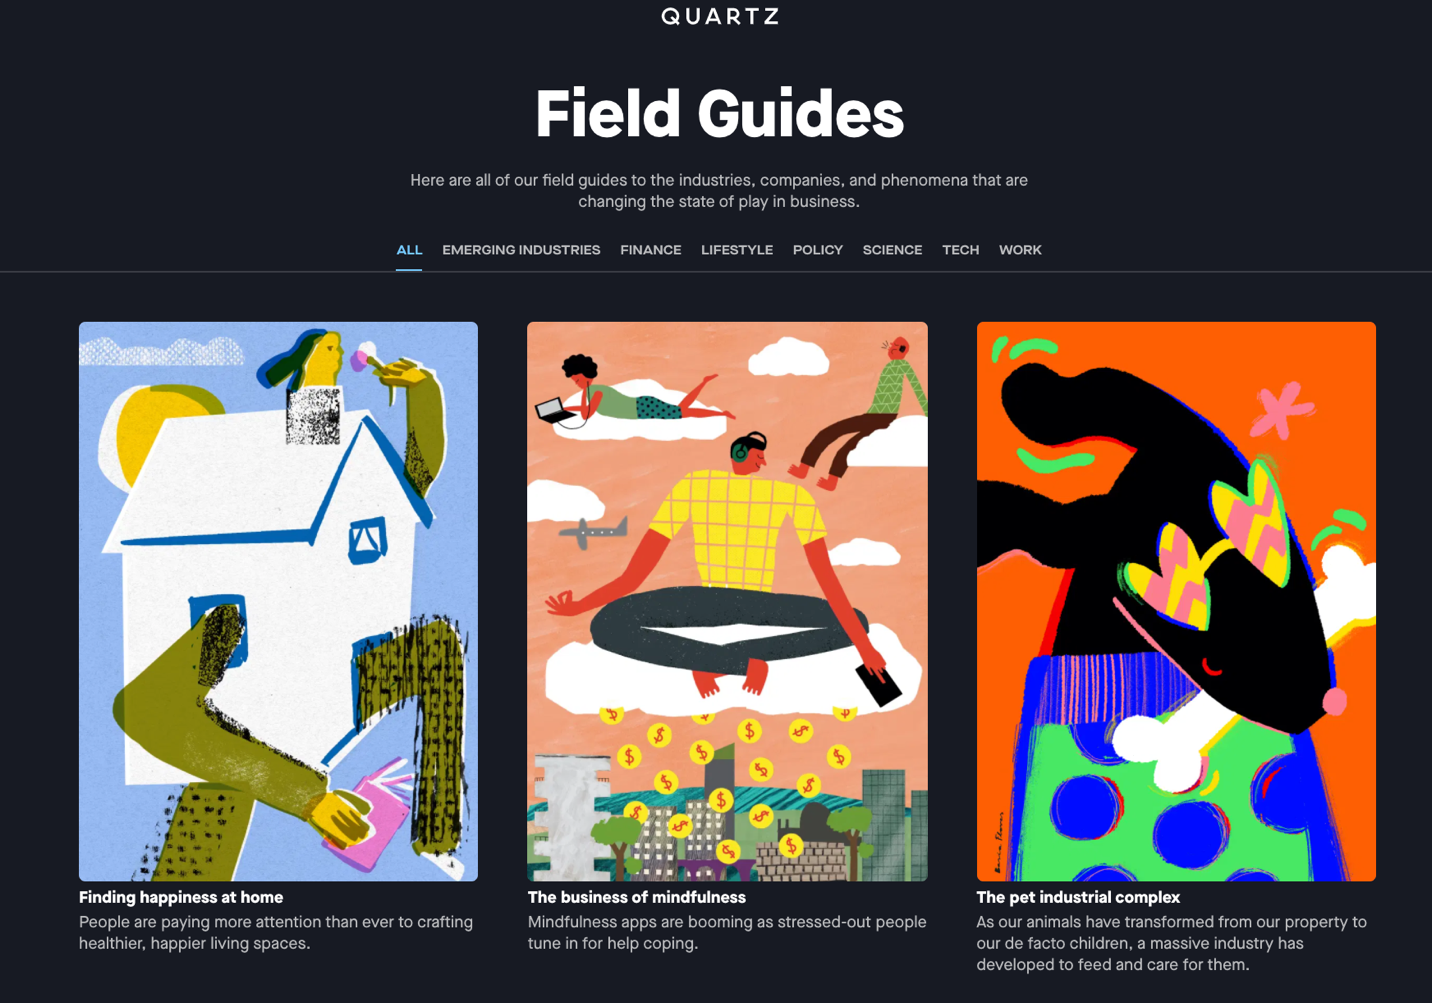 Quartz Field Guides page showing three niche topics that lead to multiple content pieces